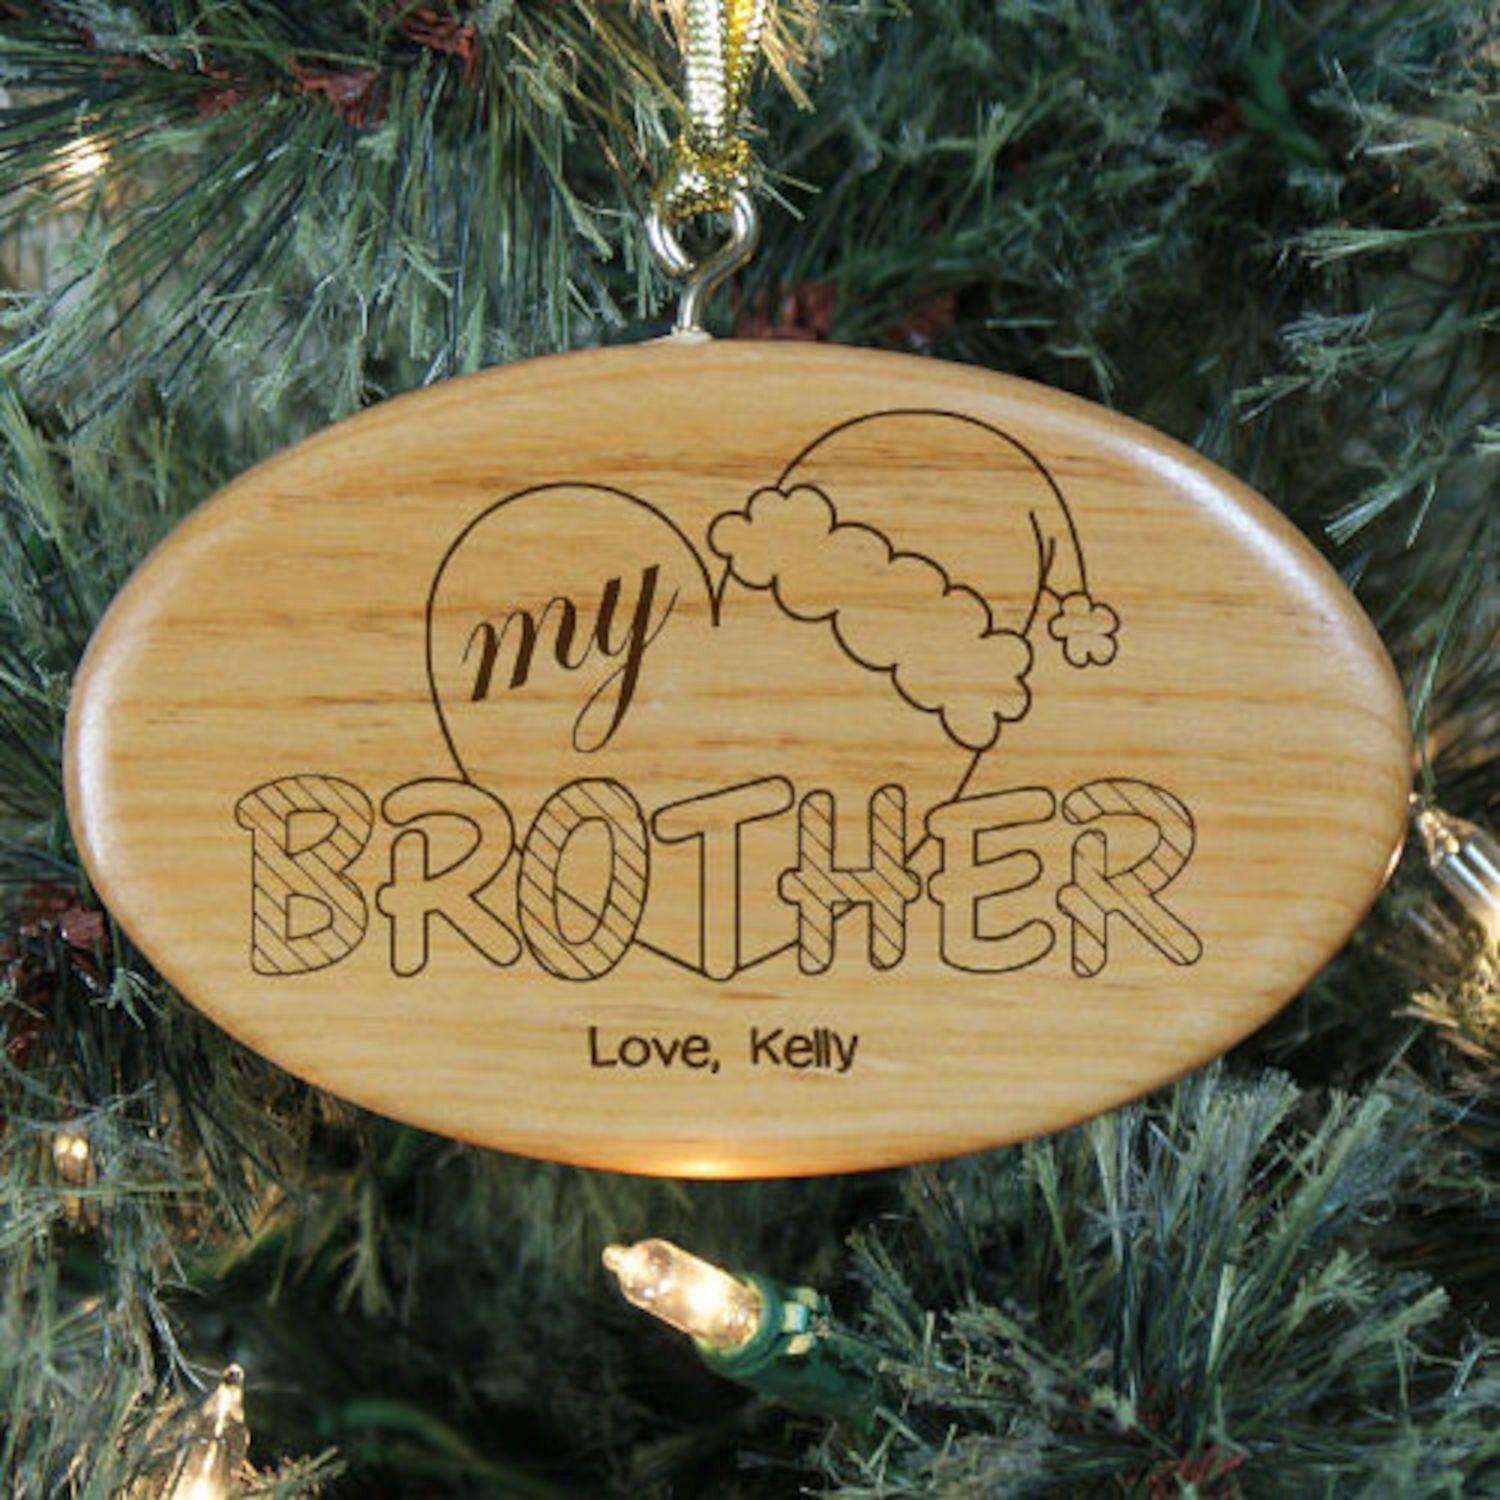 Personalized engraved heart my brother wooden oval ornament